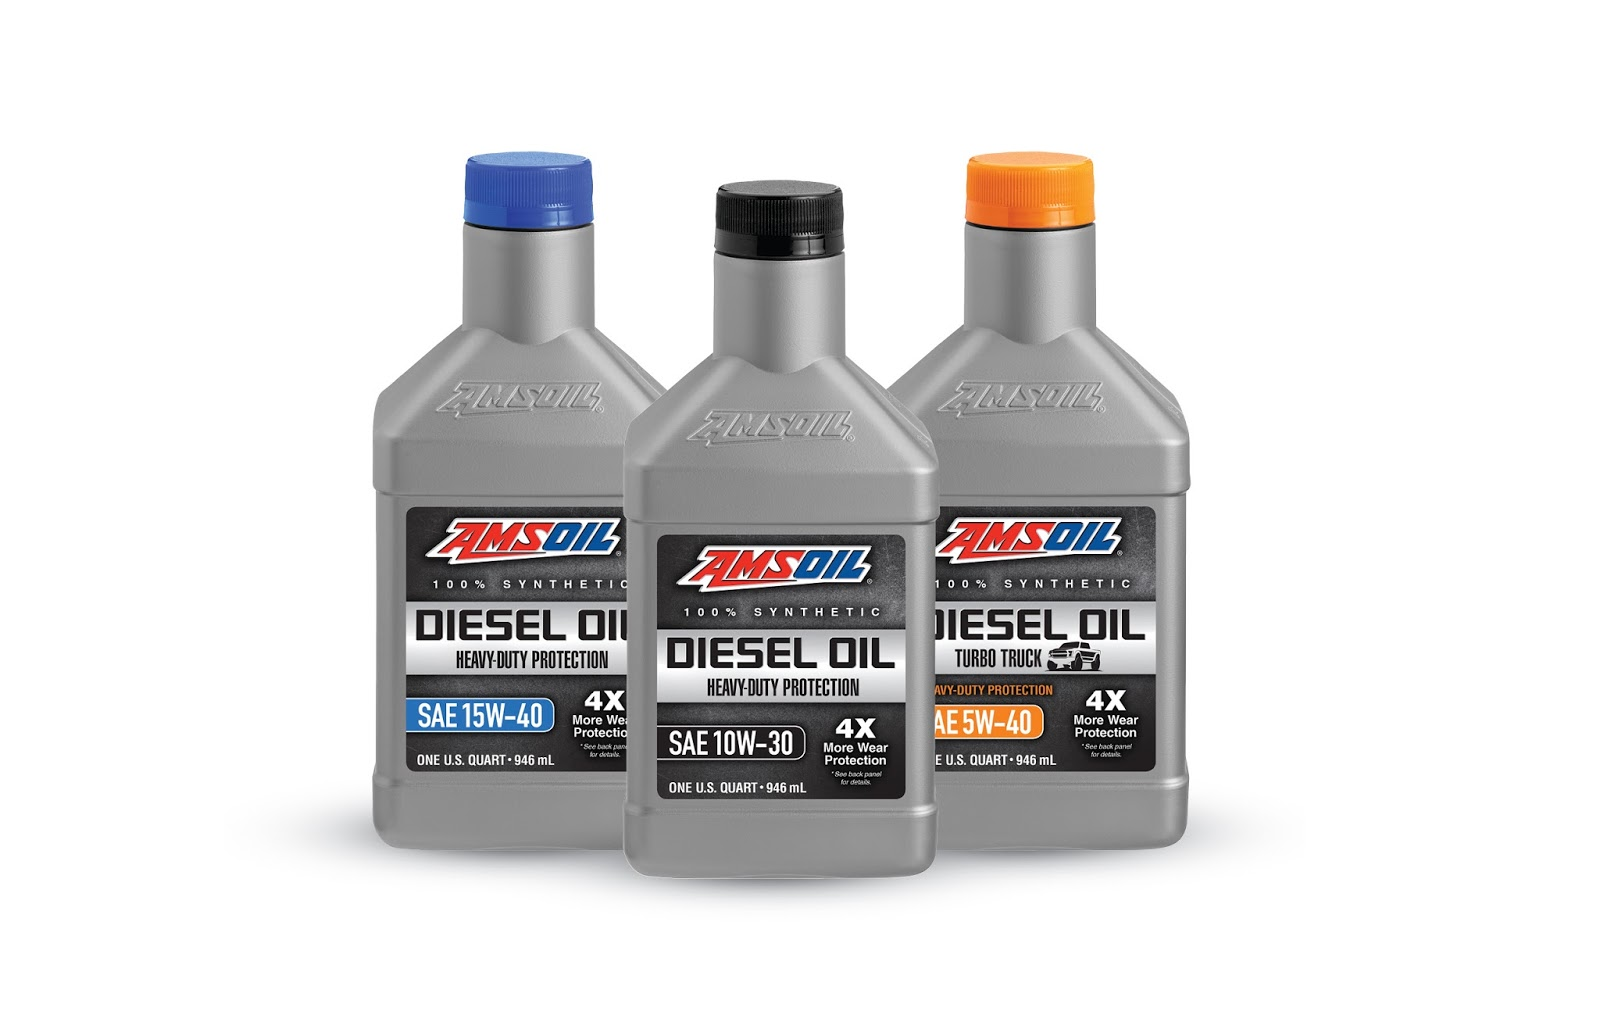 Amsoil Signature Series Max Duty Synthetic Diesel Oil 15w 40 | Upcomingcarshq.com